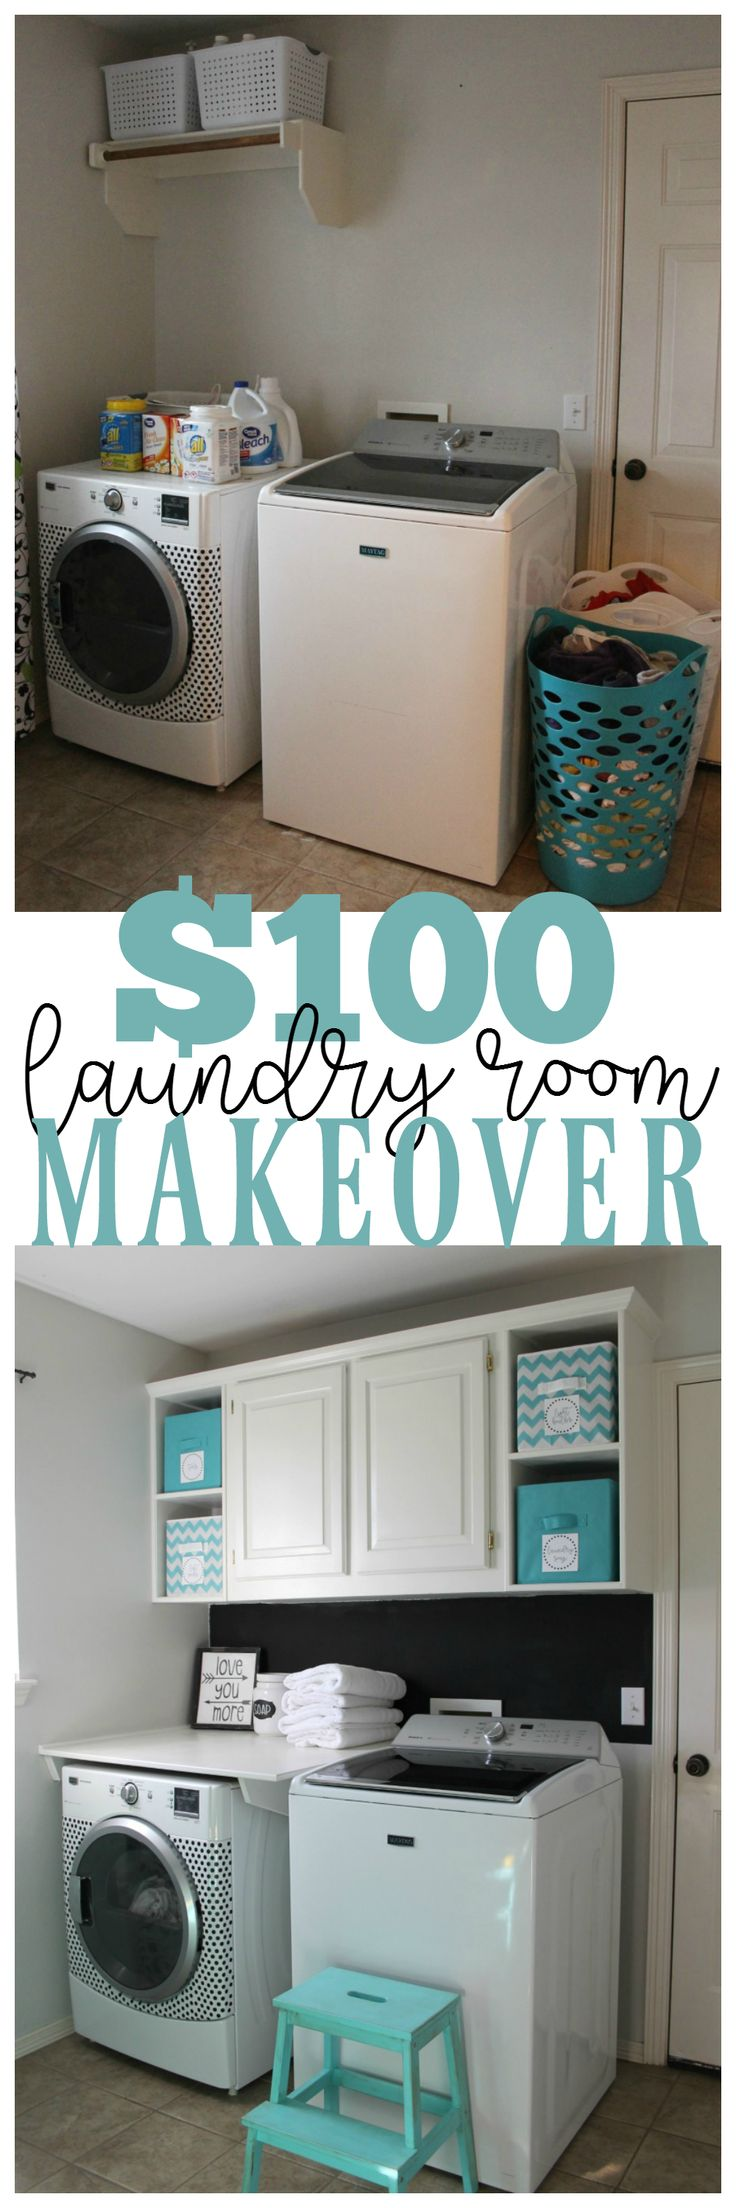 Design Laundry Room Cabinets best 25 laundry room cabinets ideas on pinterest makeover for under 100